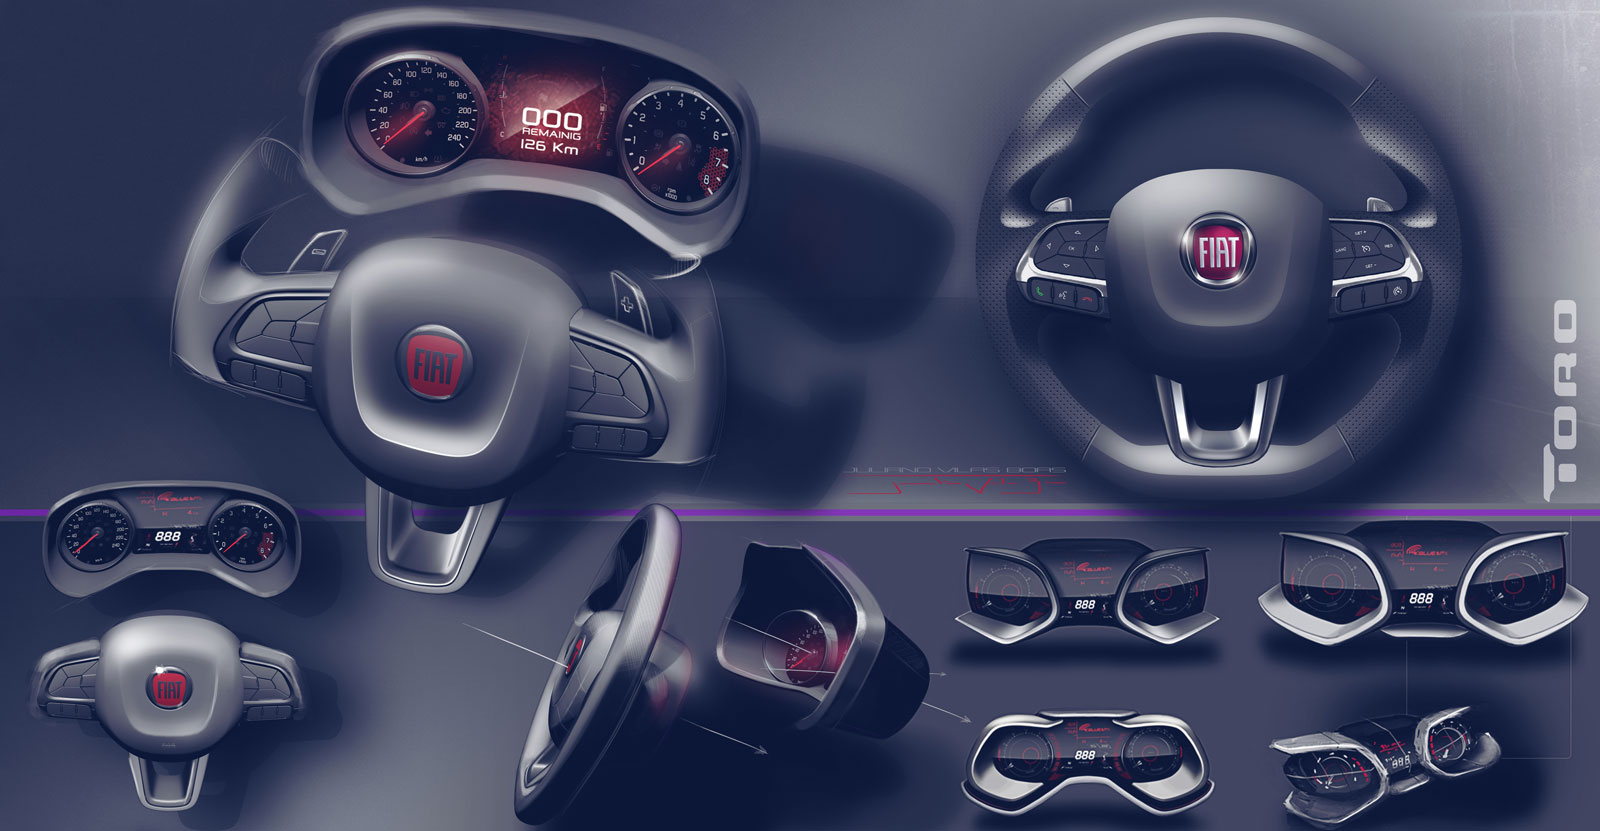 Fiat Toro Interior Design Sketch Render Steering Wheel